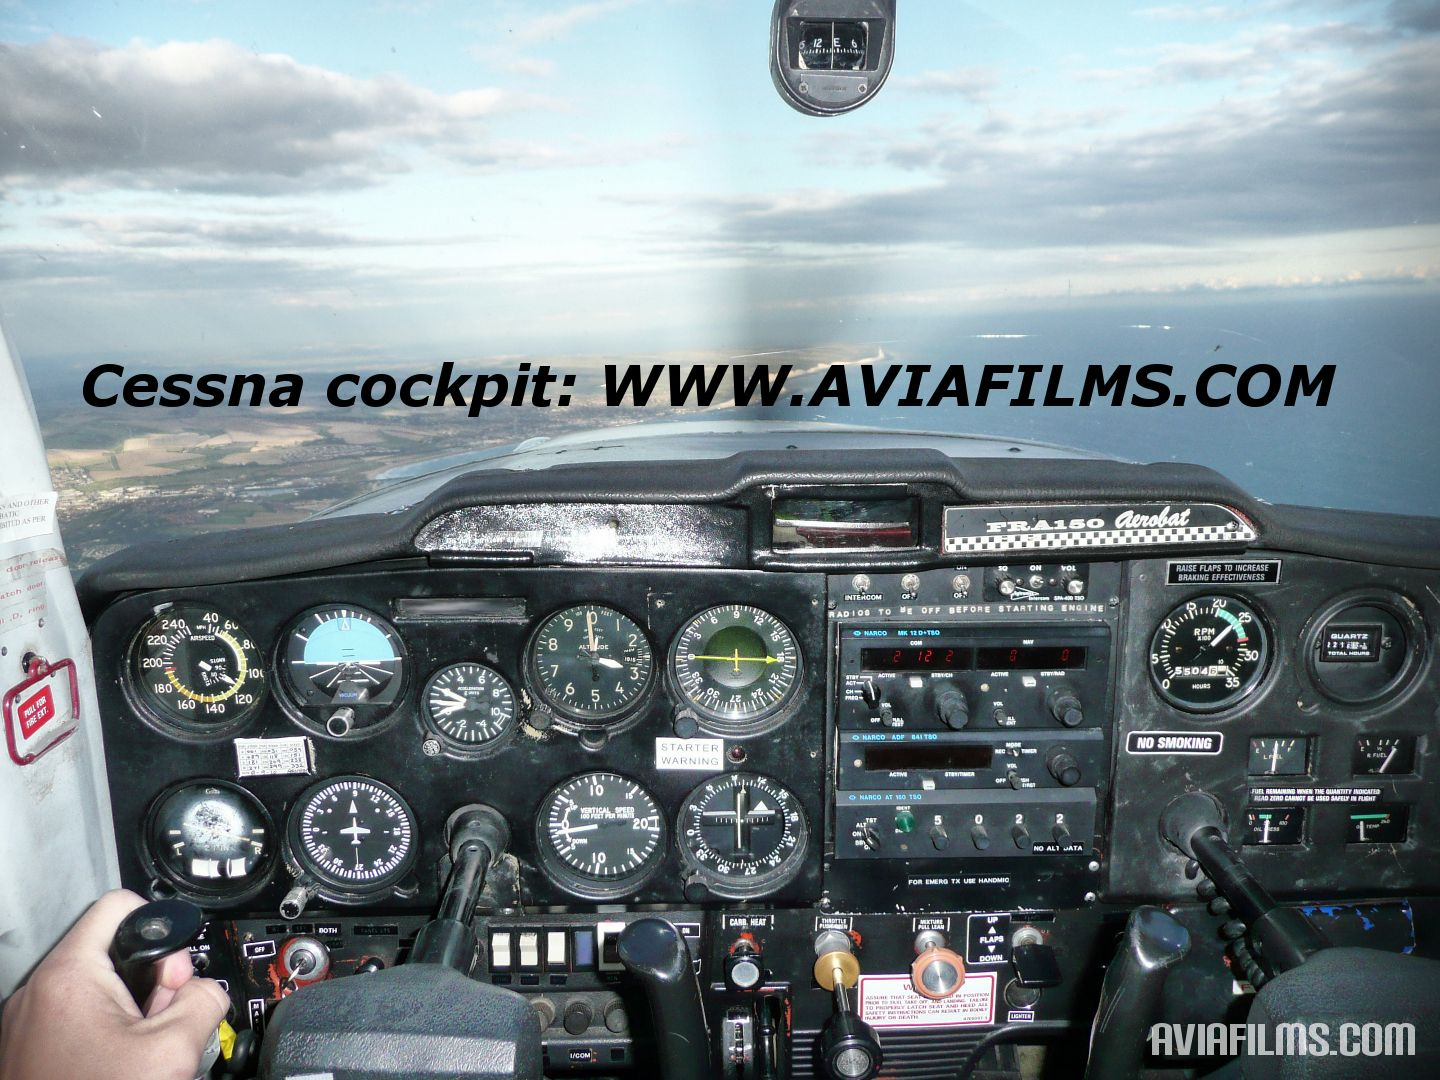 Diagram Of Cessna C150 Engine With Names Google Search Cessna